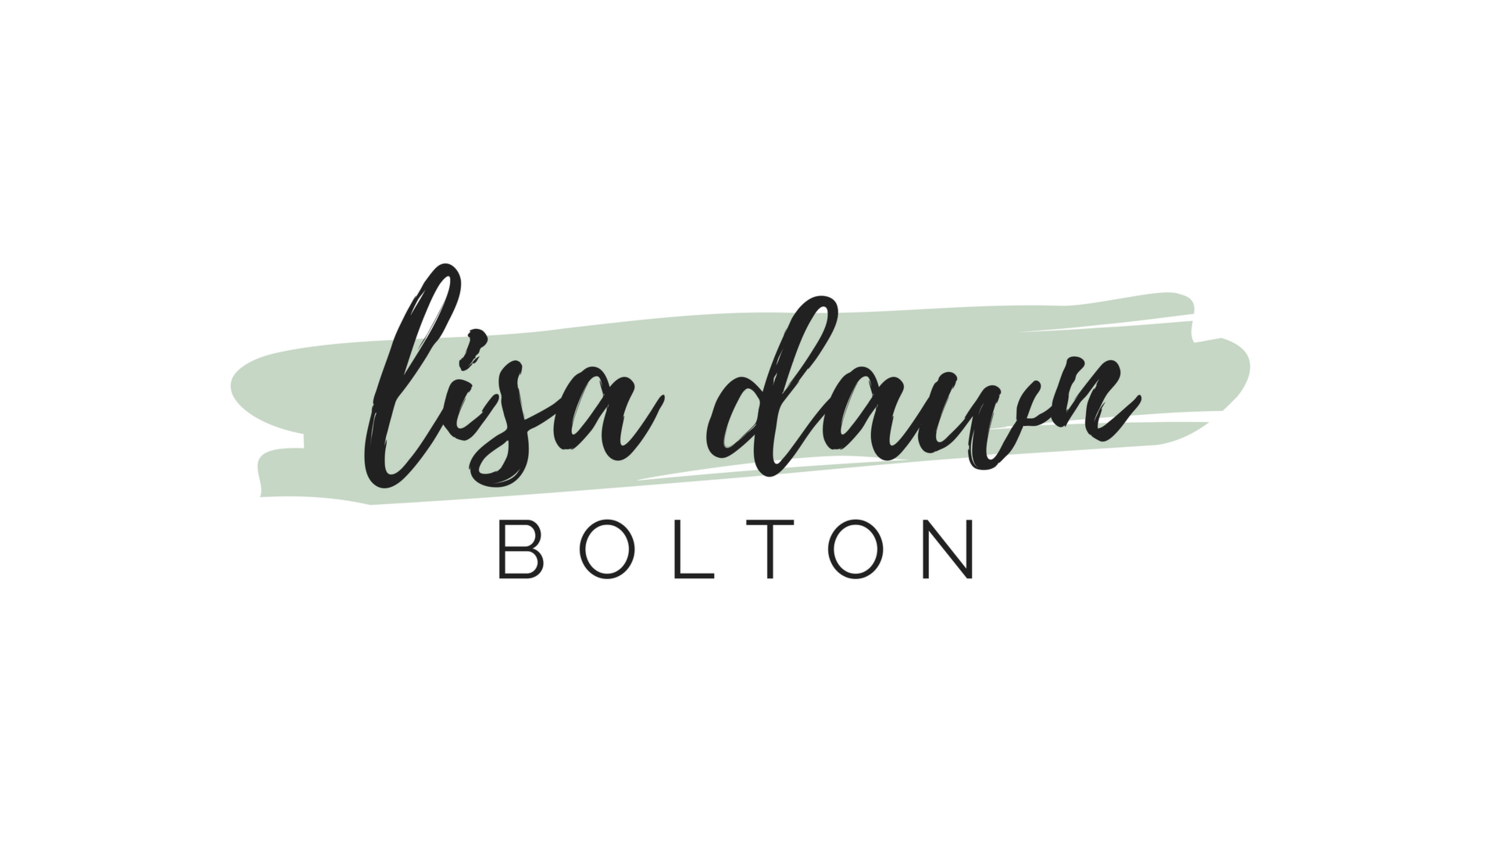 Lisa Dawn Bolton